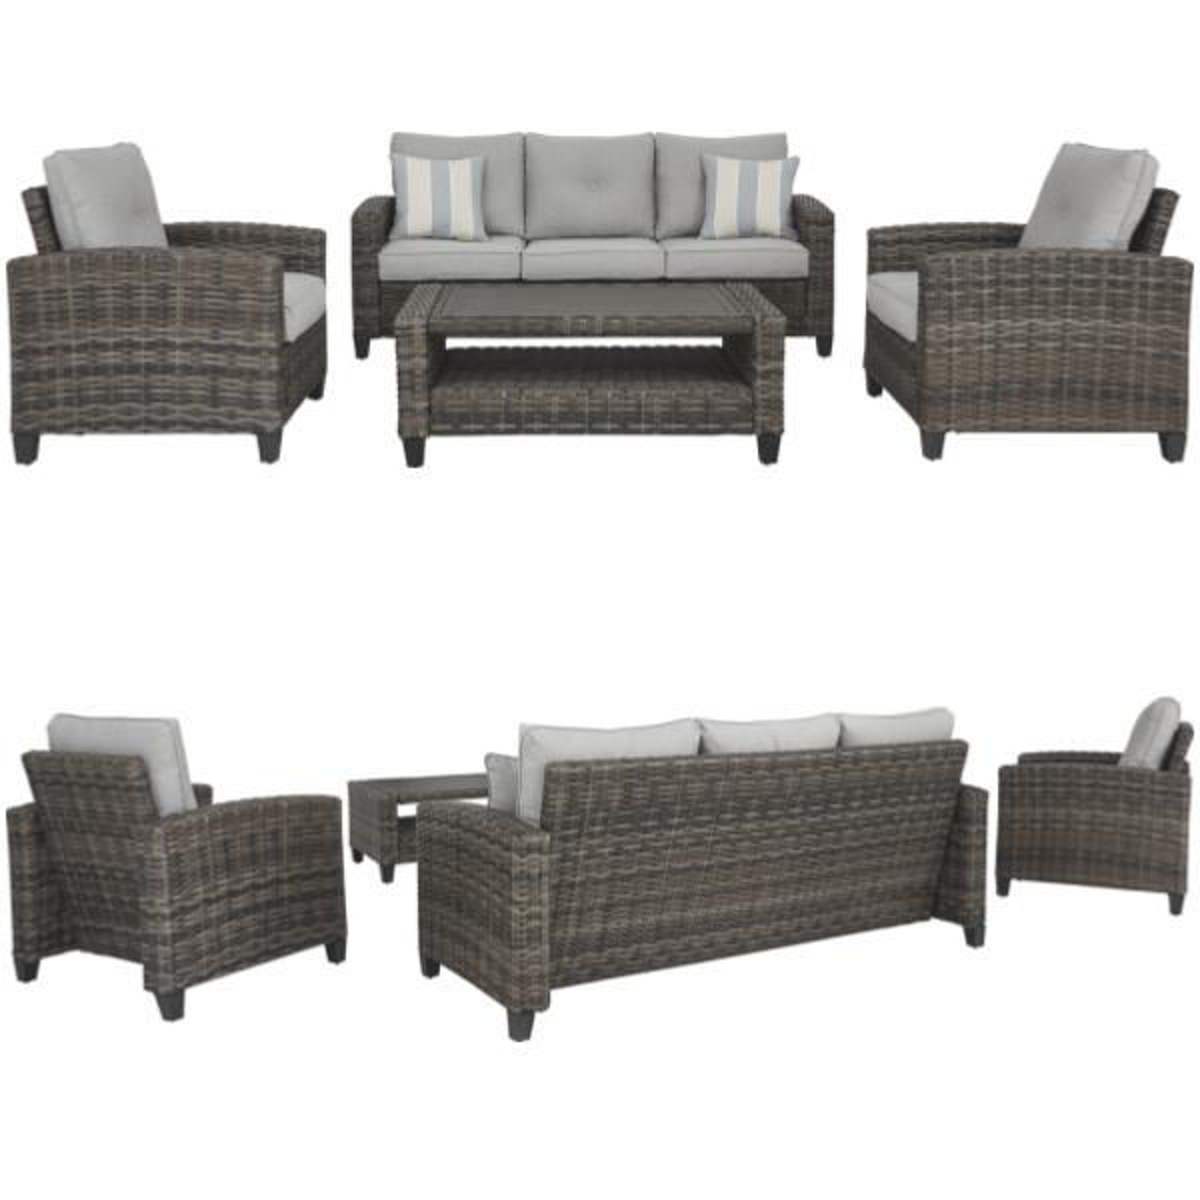 Picture of ROSEMARY SOFA/CHAIRS/TABLE SET